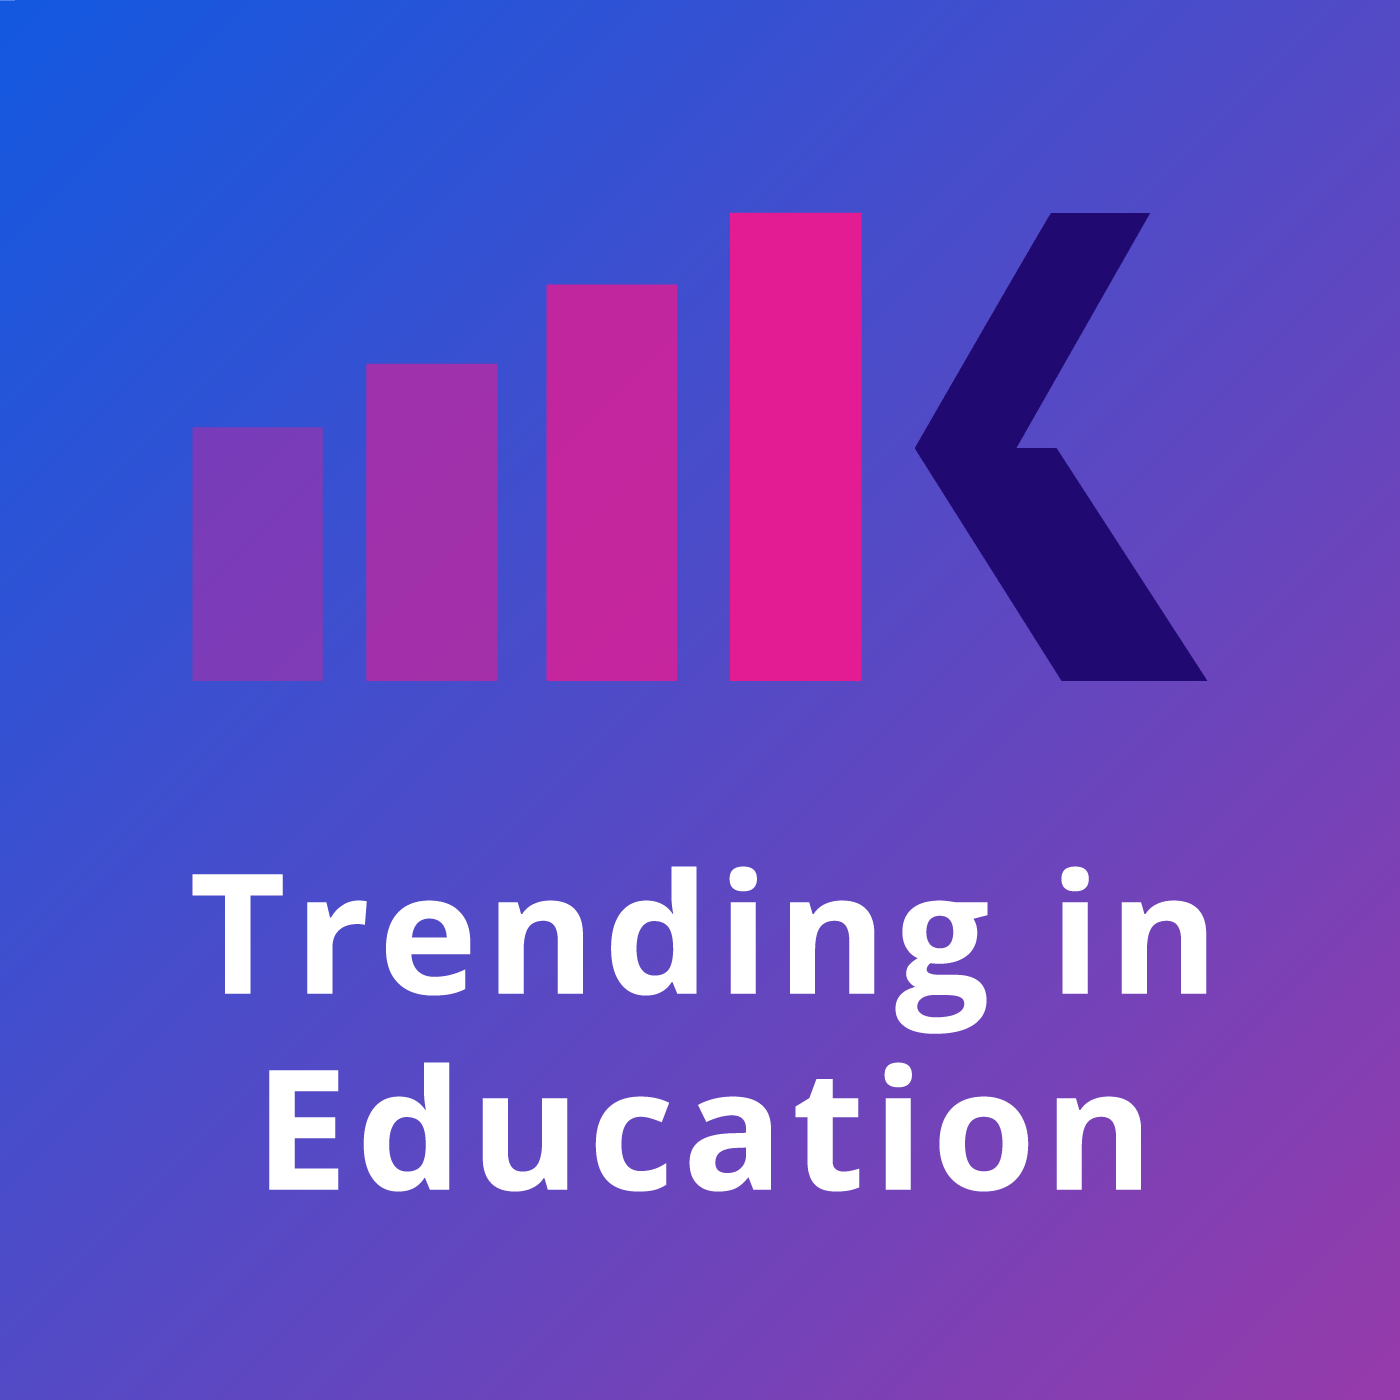 Trending in Education - Episode 59 - Torobo-kun, Artificial Intelligence, & College Admissions